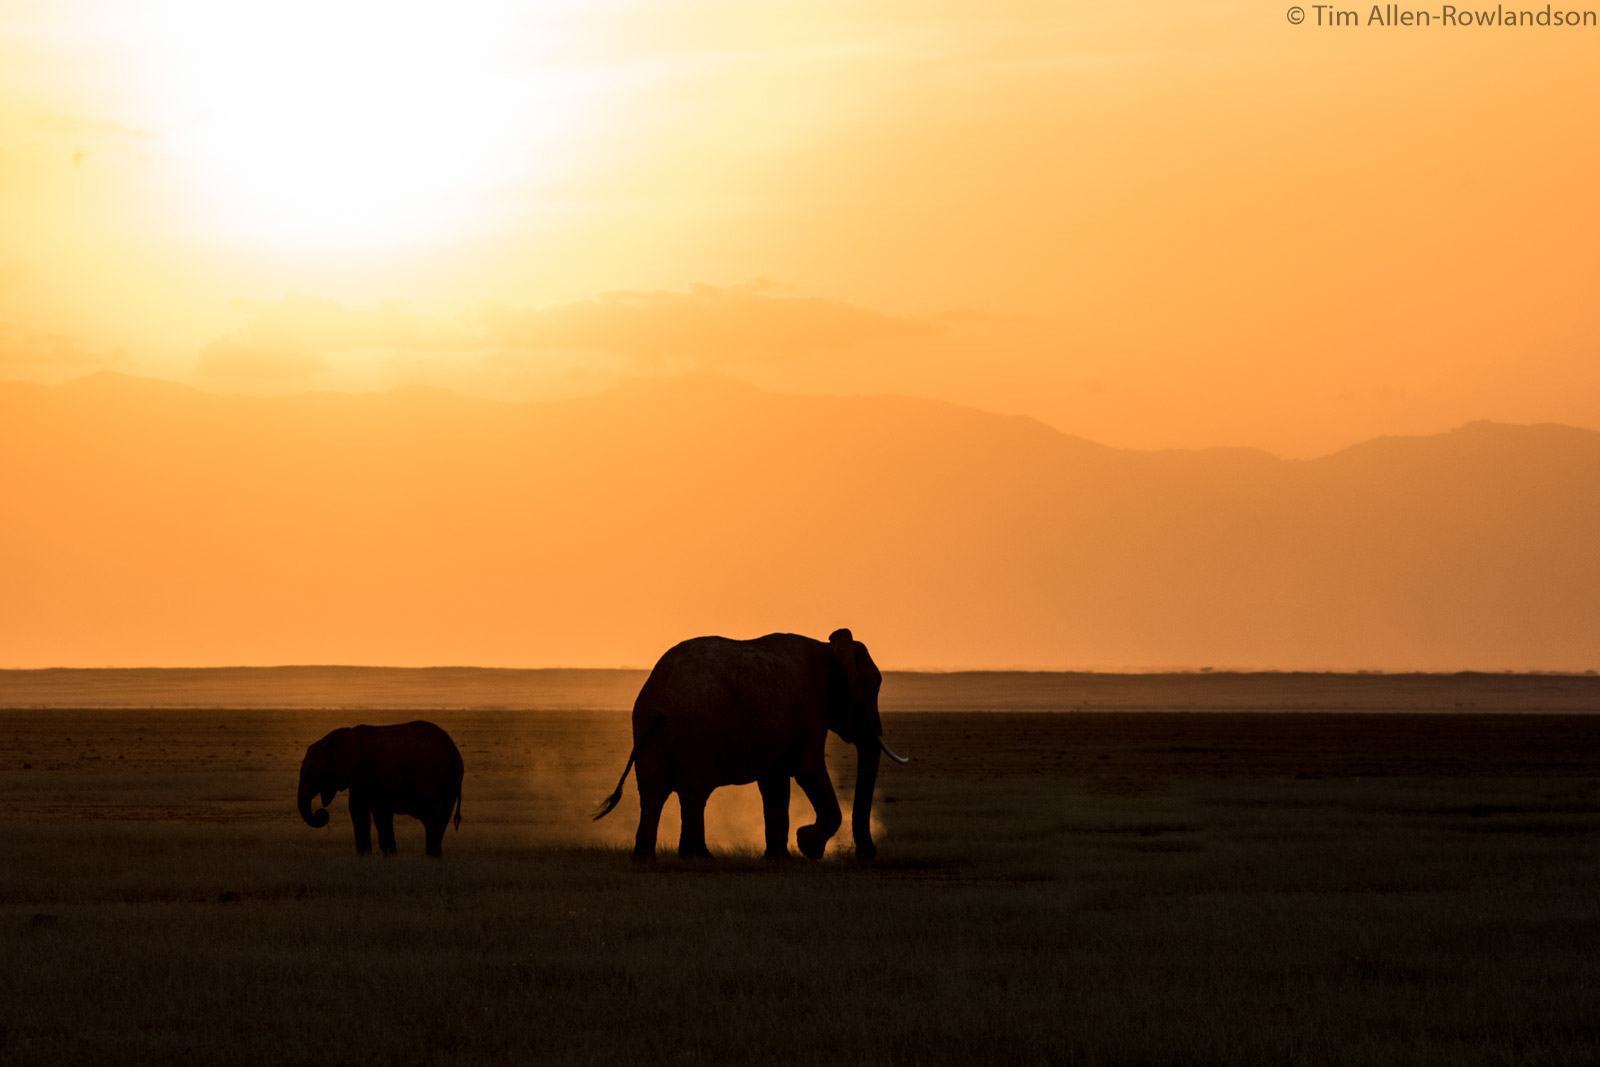 Elephant and calf foraging at sunset, Amboseli